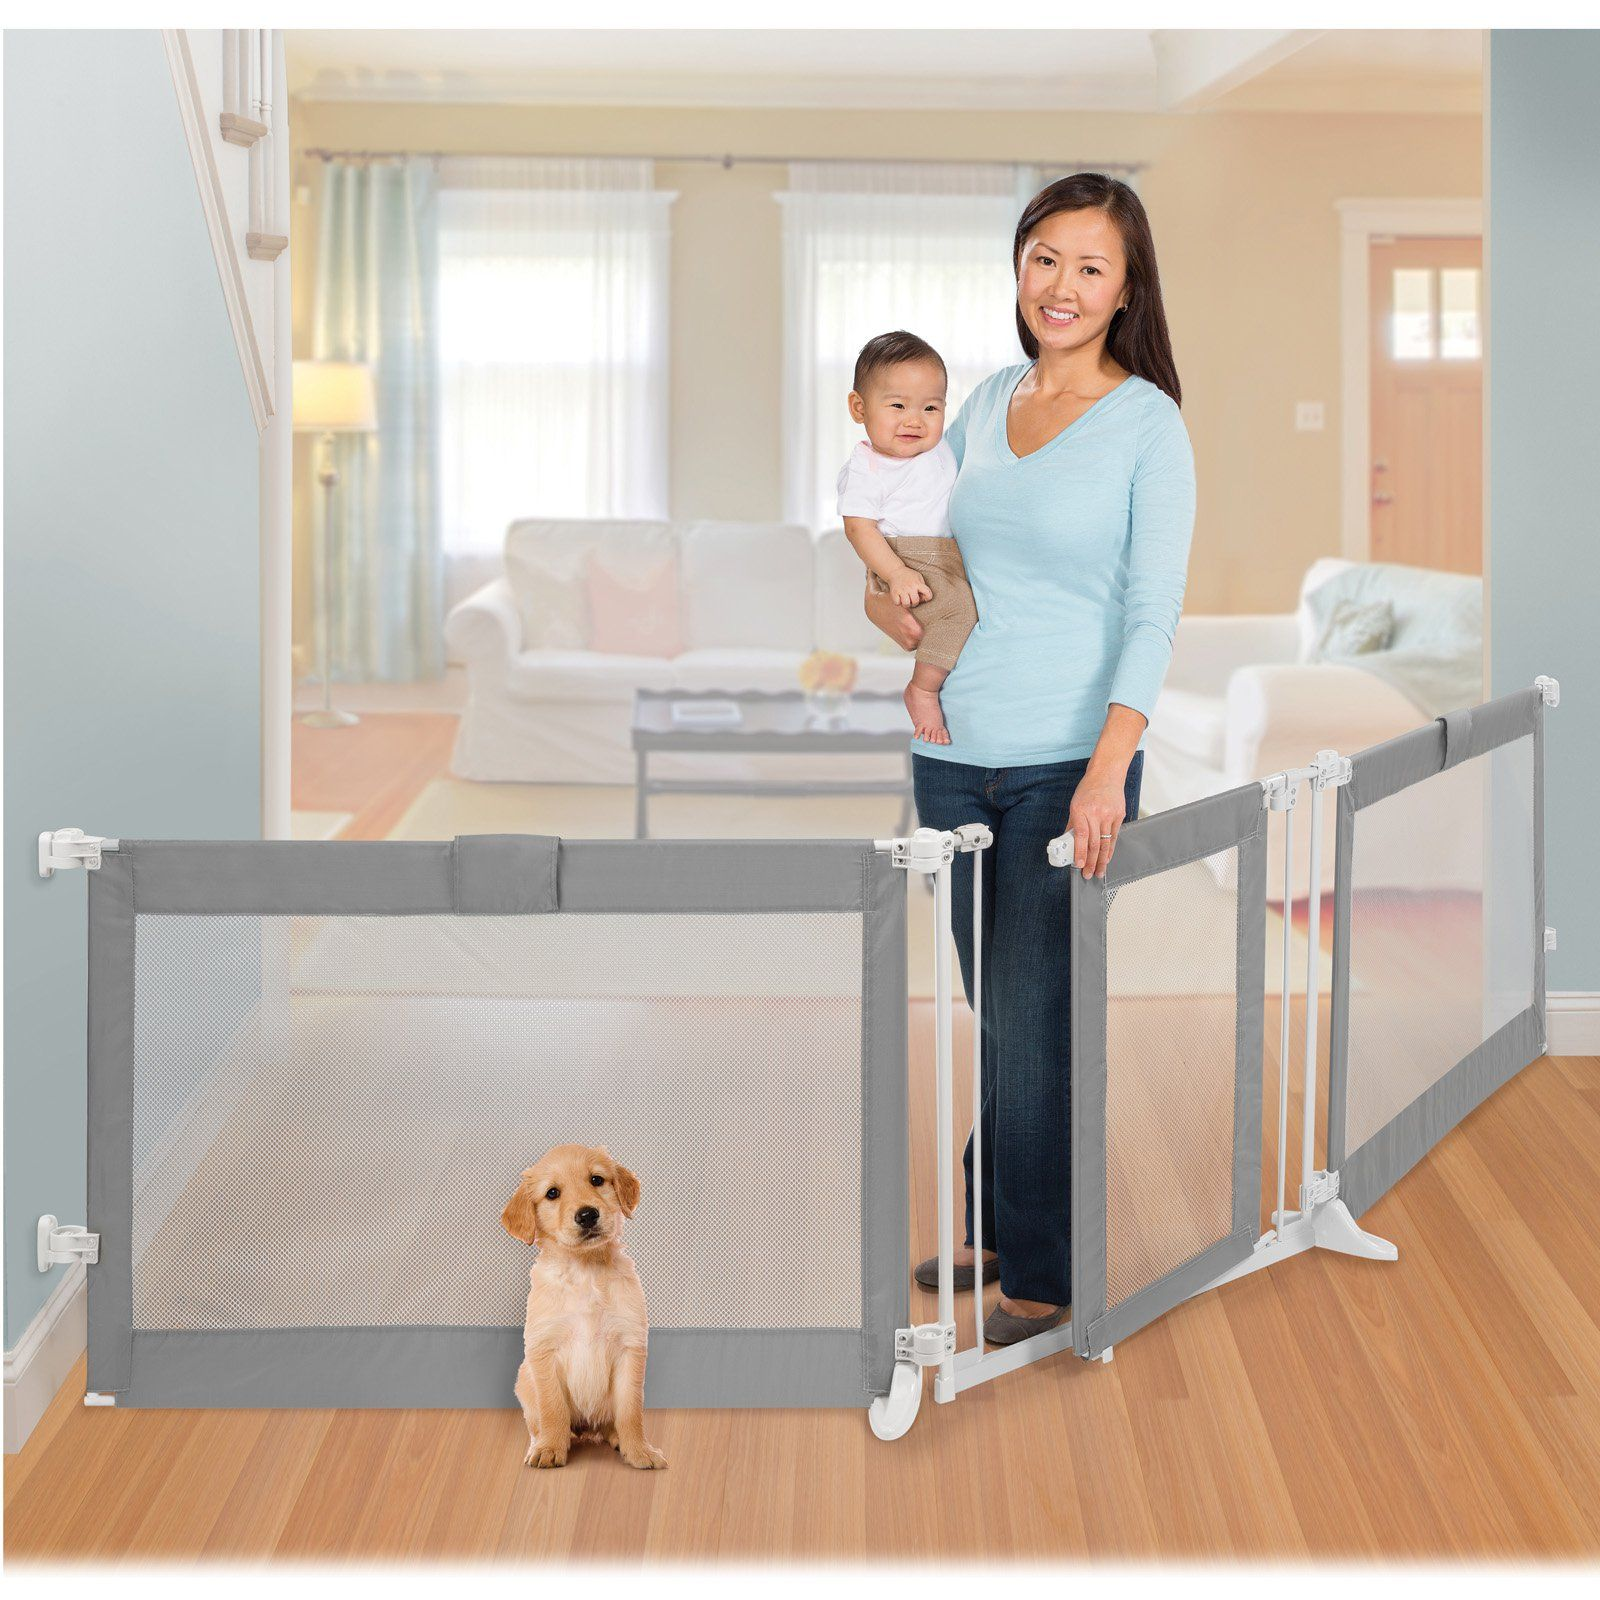 Free 2 Day Shipping Buy Summer Infant Extra Wide Baby Gate Playard 65 86 Or 96 141 At Walmart Com